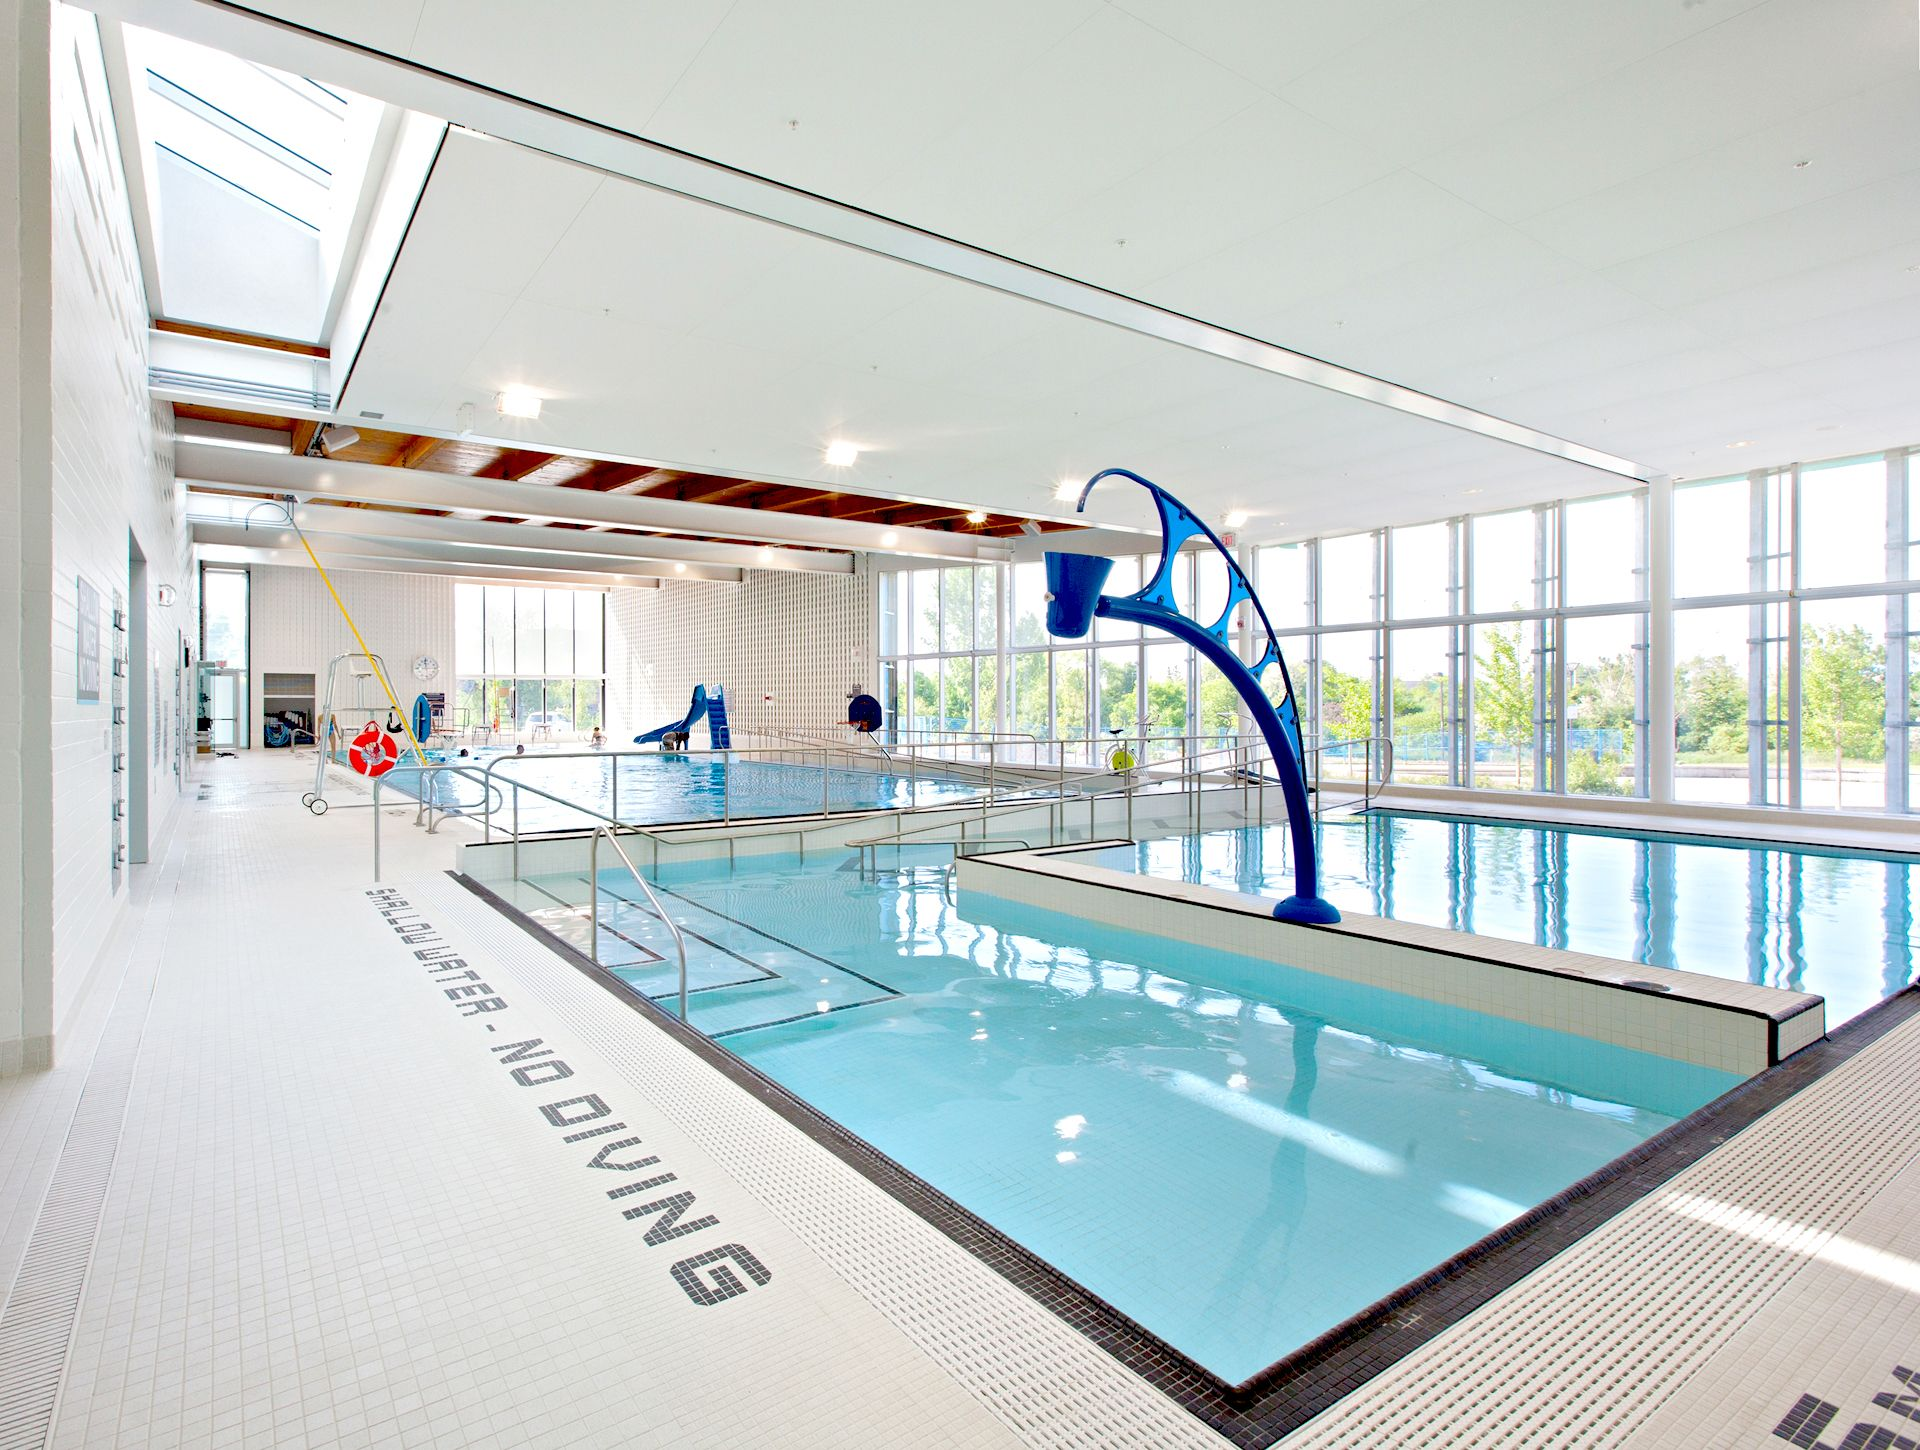 Malton Community Pool